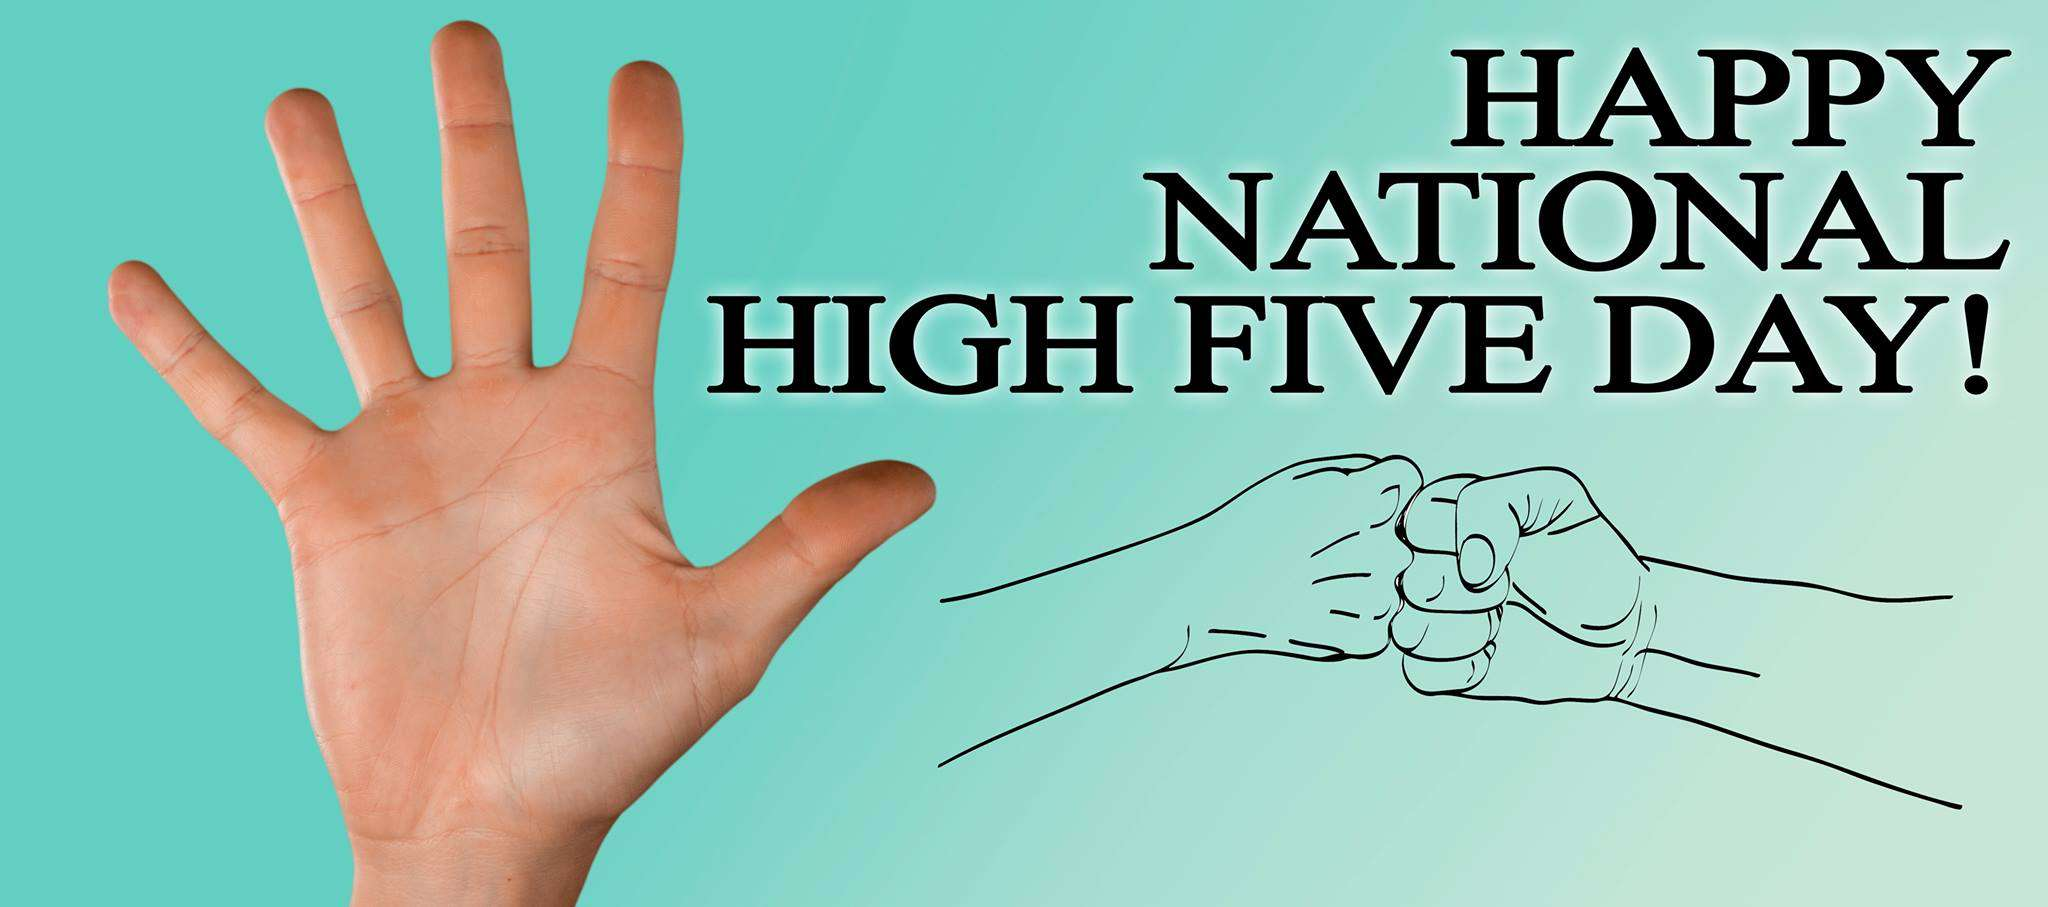 National High Five Day Wishes for Instagram